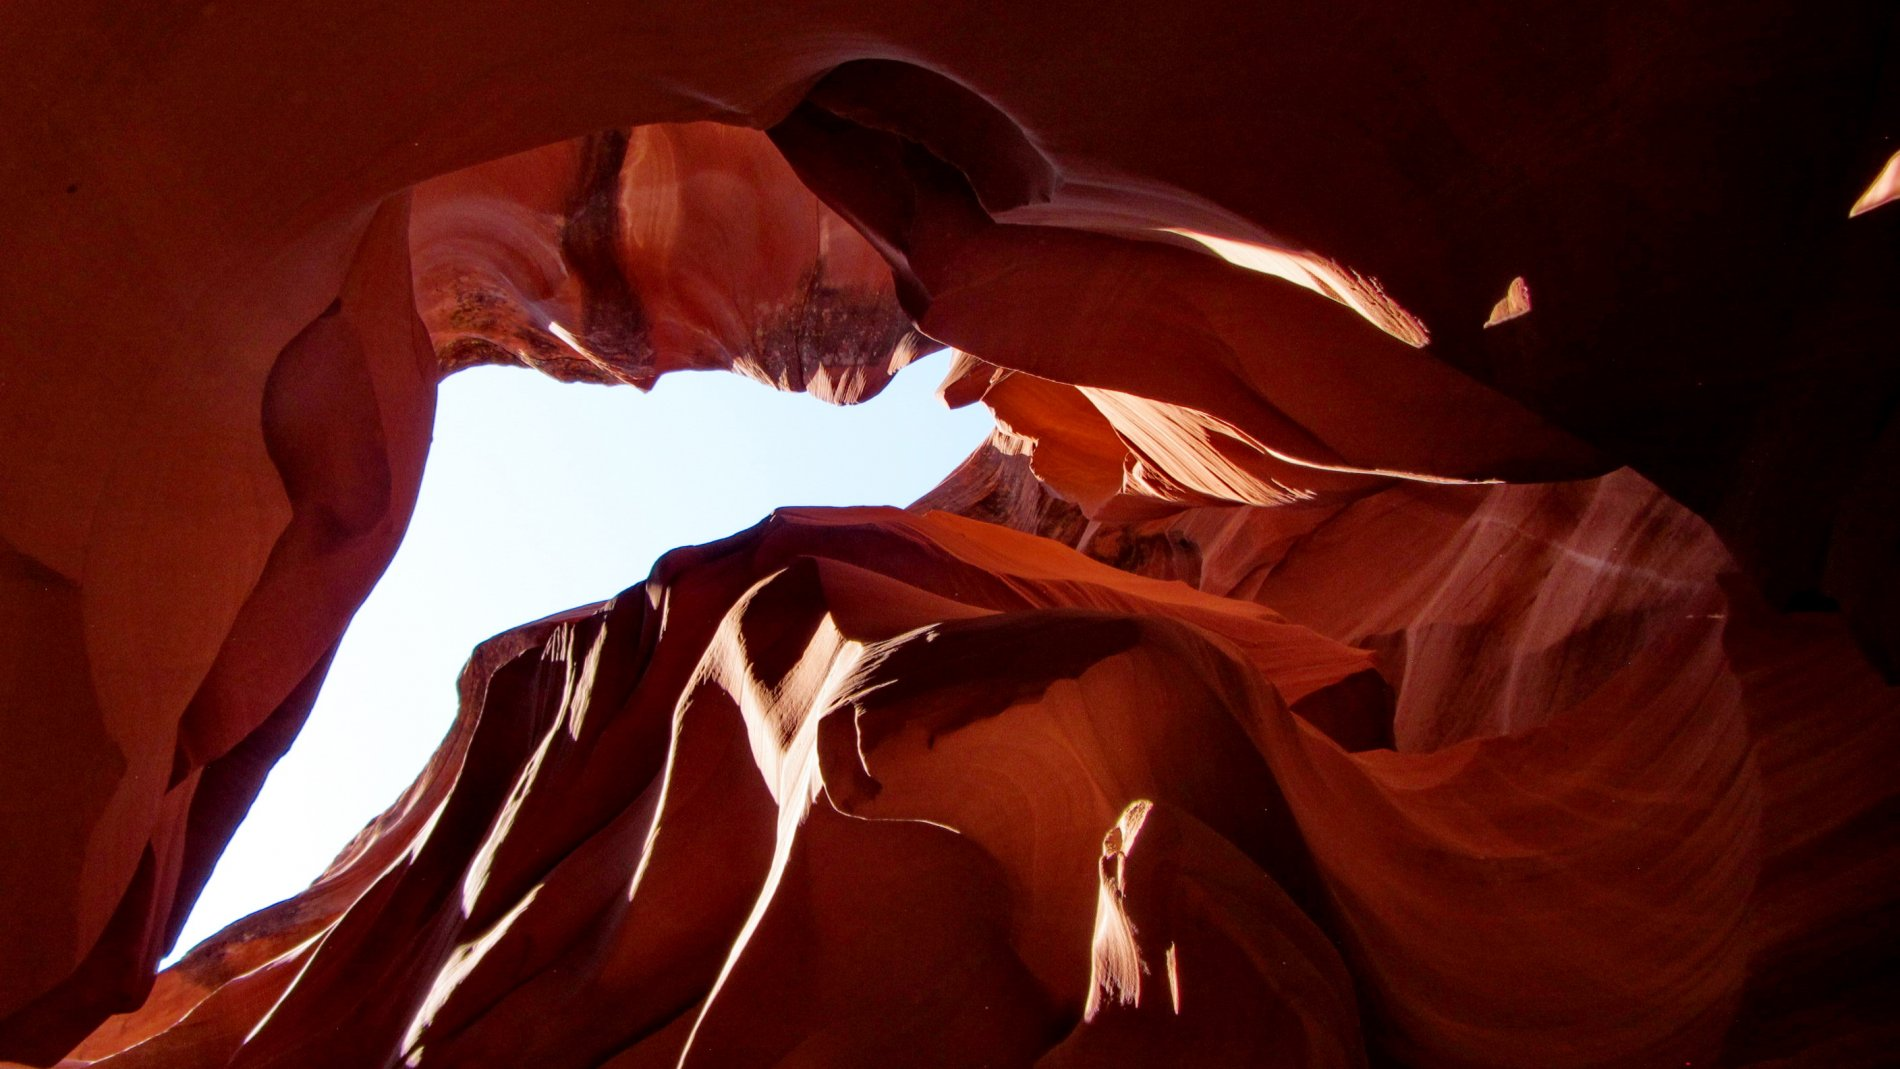 Antelope Canyon_04.JPG-commment